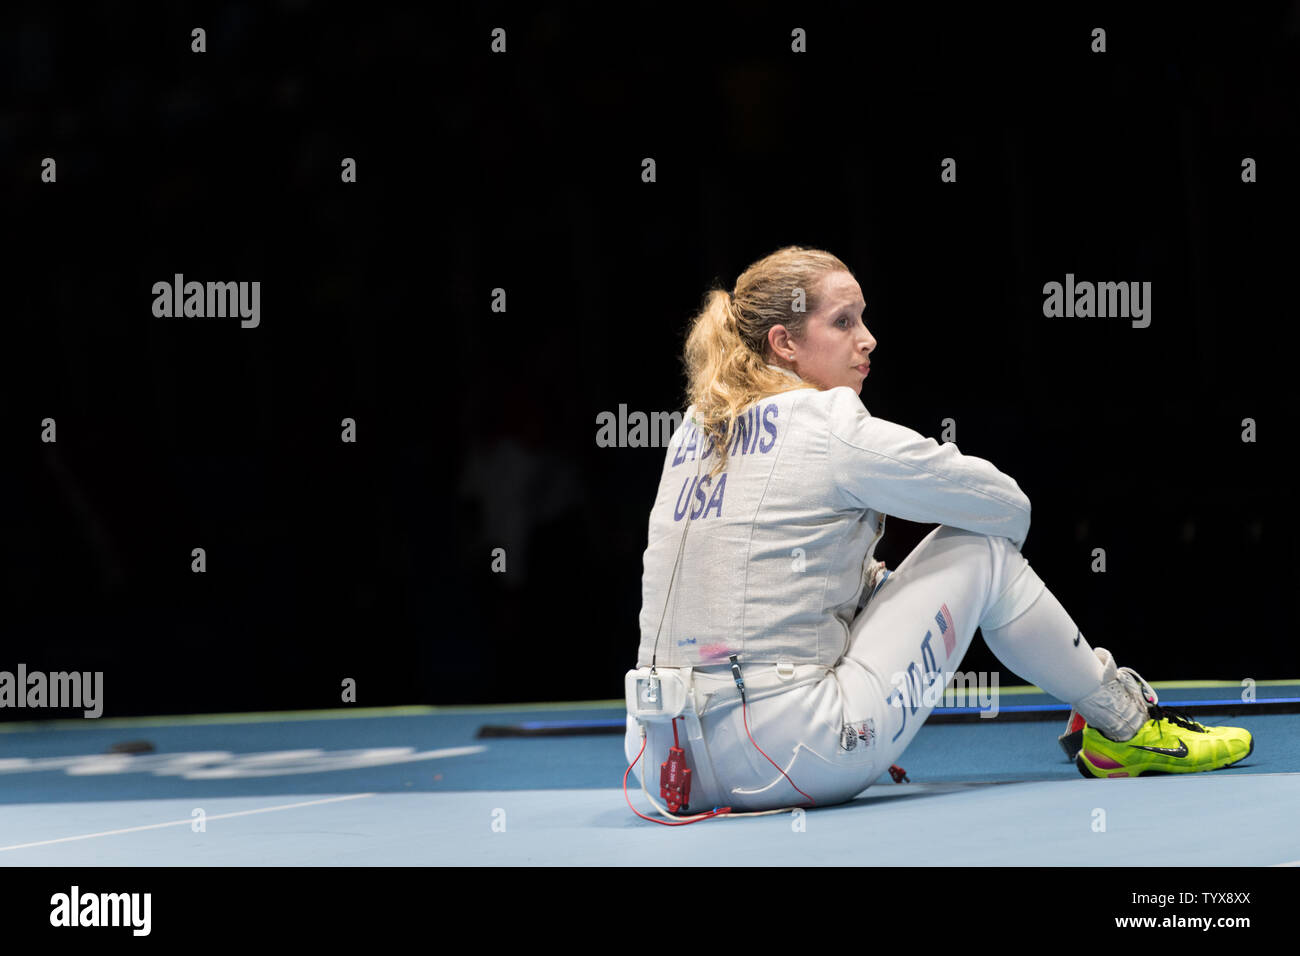 Fencer Mariel Zagunis of the United States sits down on the piste after losing to Russia in the Women's Team Saber semifinals at Carioca 3 Arena at the 2016 Rio Summer Olympics in Rio de Janeiro, Brazil, on August 13, 2016.  The United States lost 45-42 to Russia and will now compete with Italy for the bronze medal.      Photo by Richard Ellis/UPI.. Stock Photo